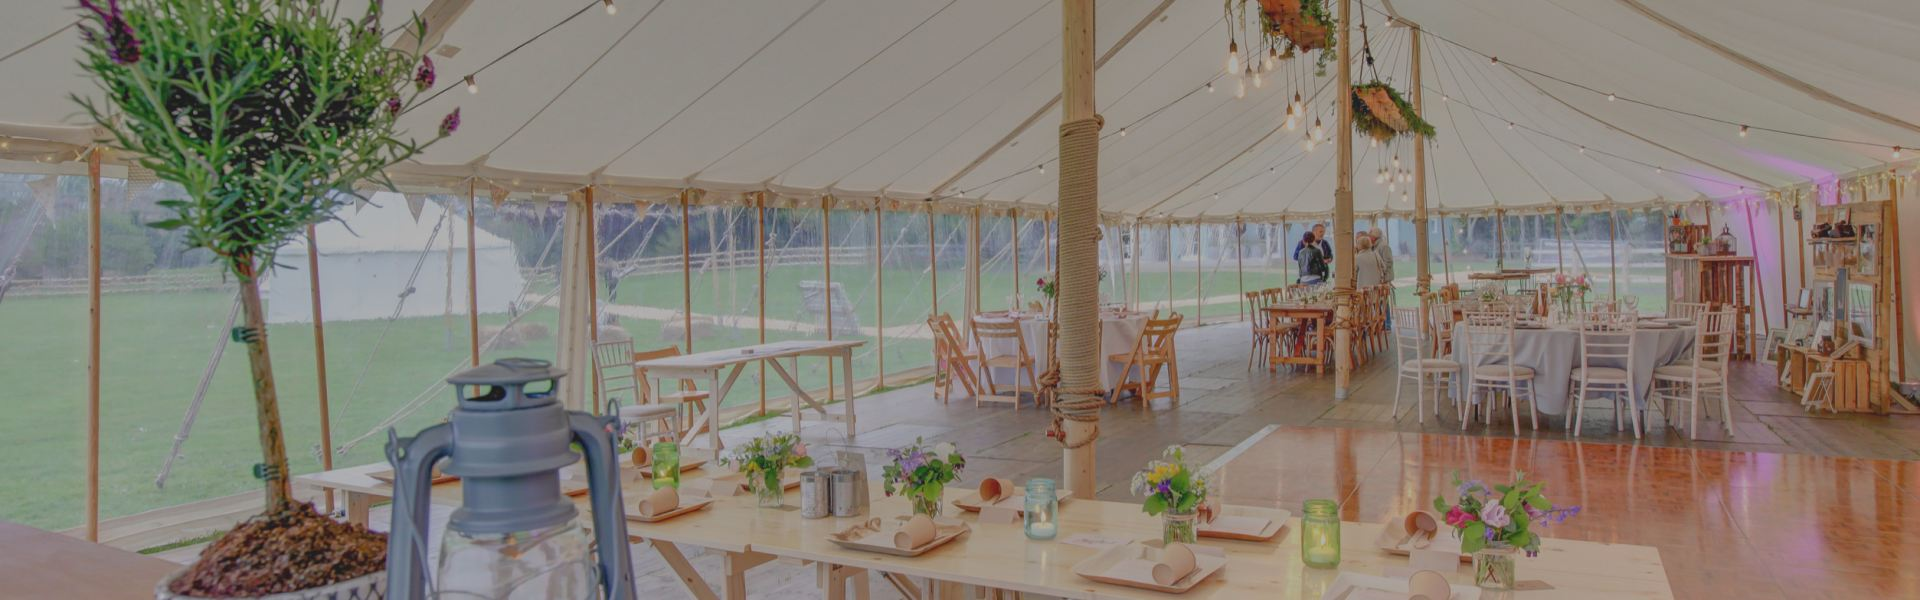 stunning pole tent marquee hire seats 50 to 500 people